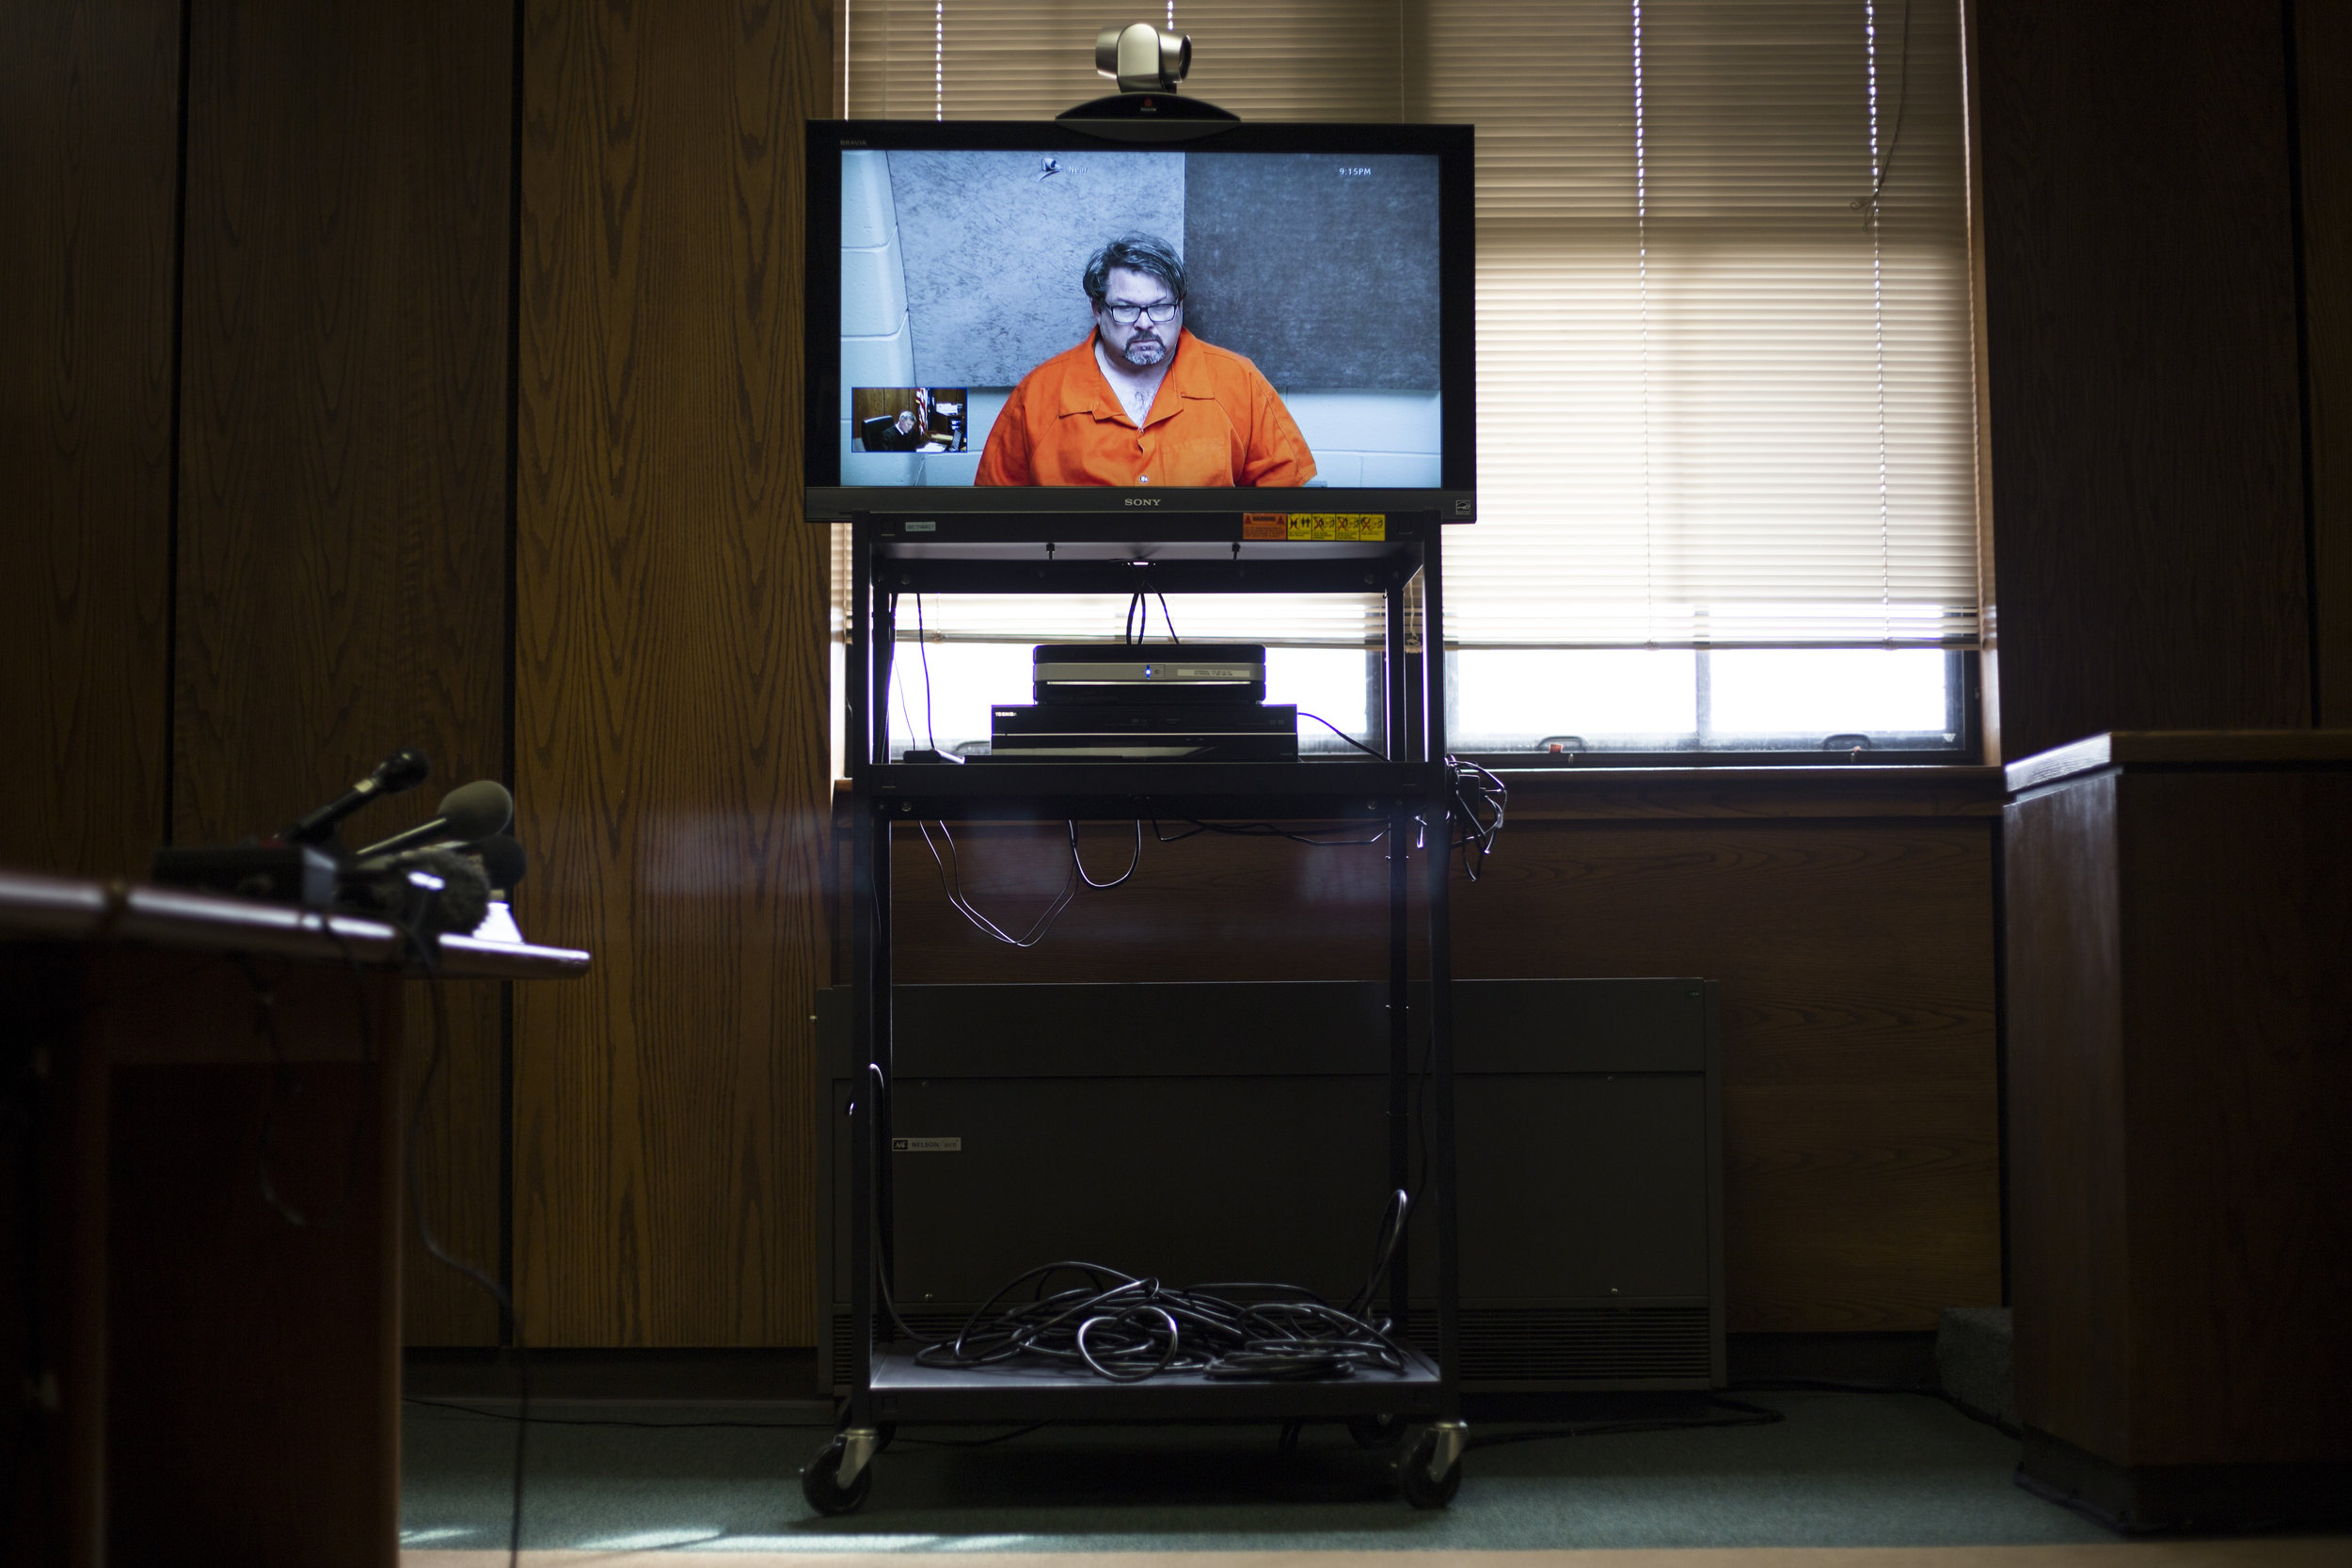 Suspected shooter Jason Dalton appears on a television screen for a video conference during his arraignment at the 8th District Court in Kalamazoo, Mich., on February 22, 2016. Dalton was suspected of killing six people and injuring two in a shooting spree that occurred that Saturday evening.